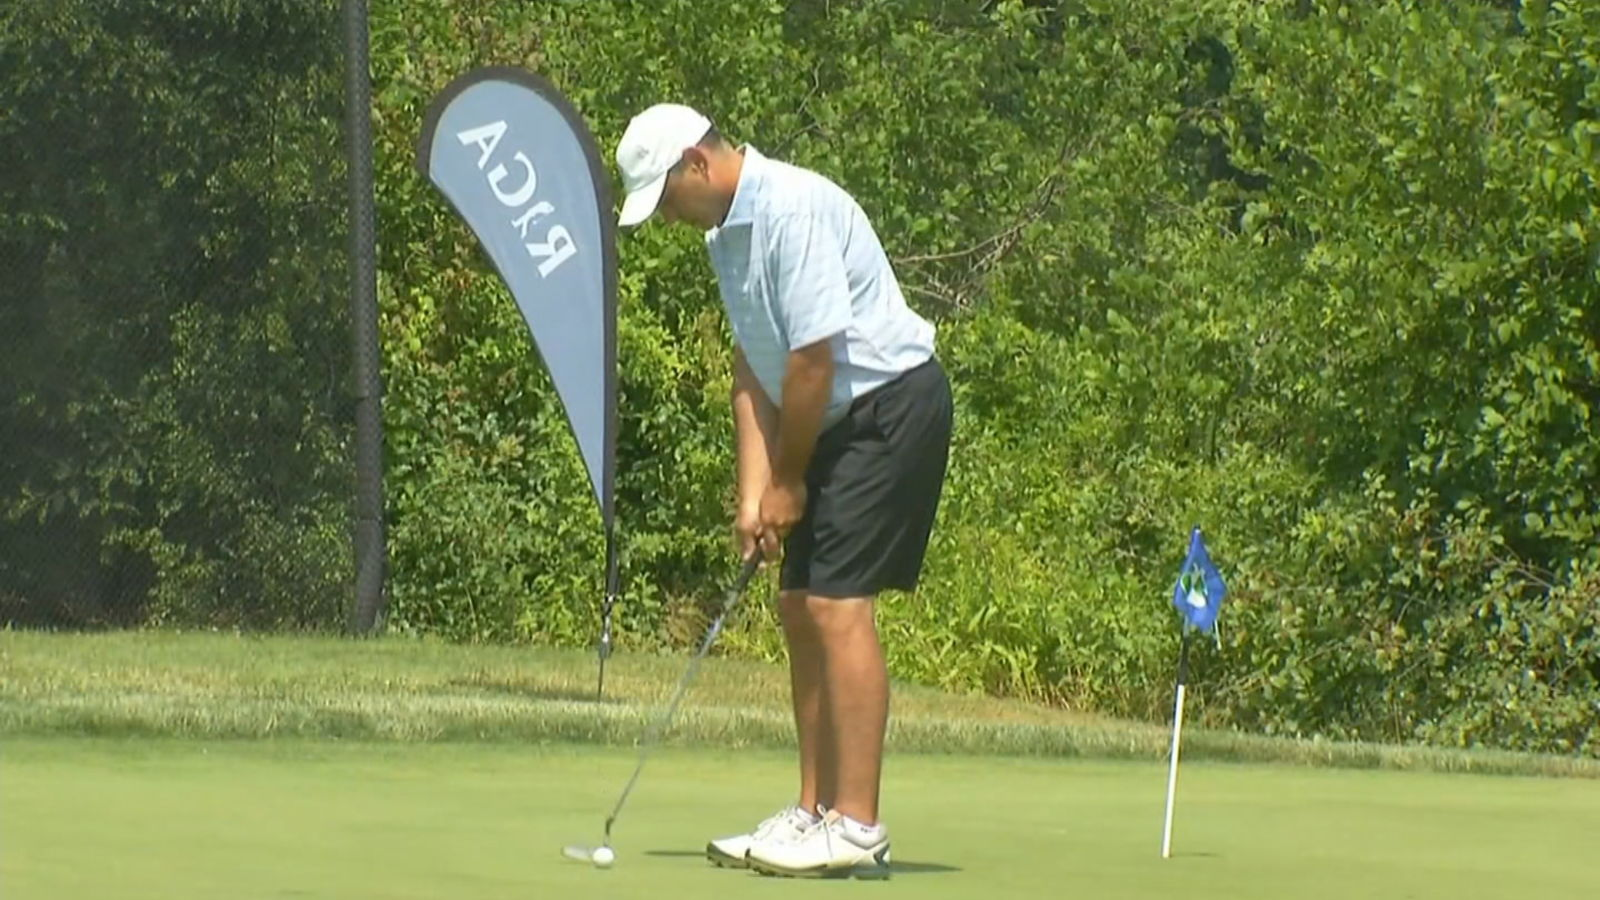 Dr. Christopher Roloff, an emergency room doctor at Sturdy Memorial Hospital in Attleboro, Mass.,  playing golf at this week's Rhode Island Amateur Championship. (WJAR)